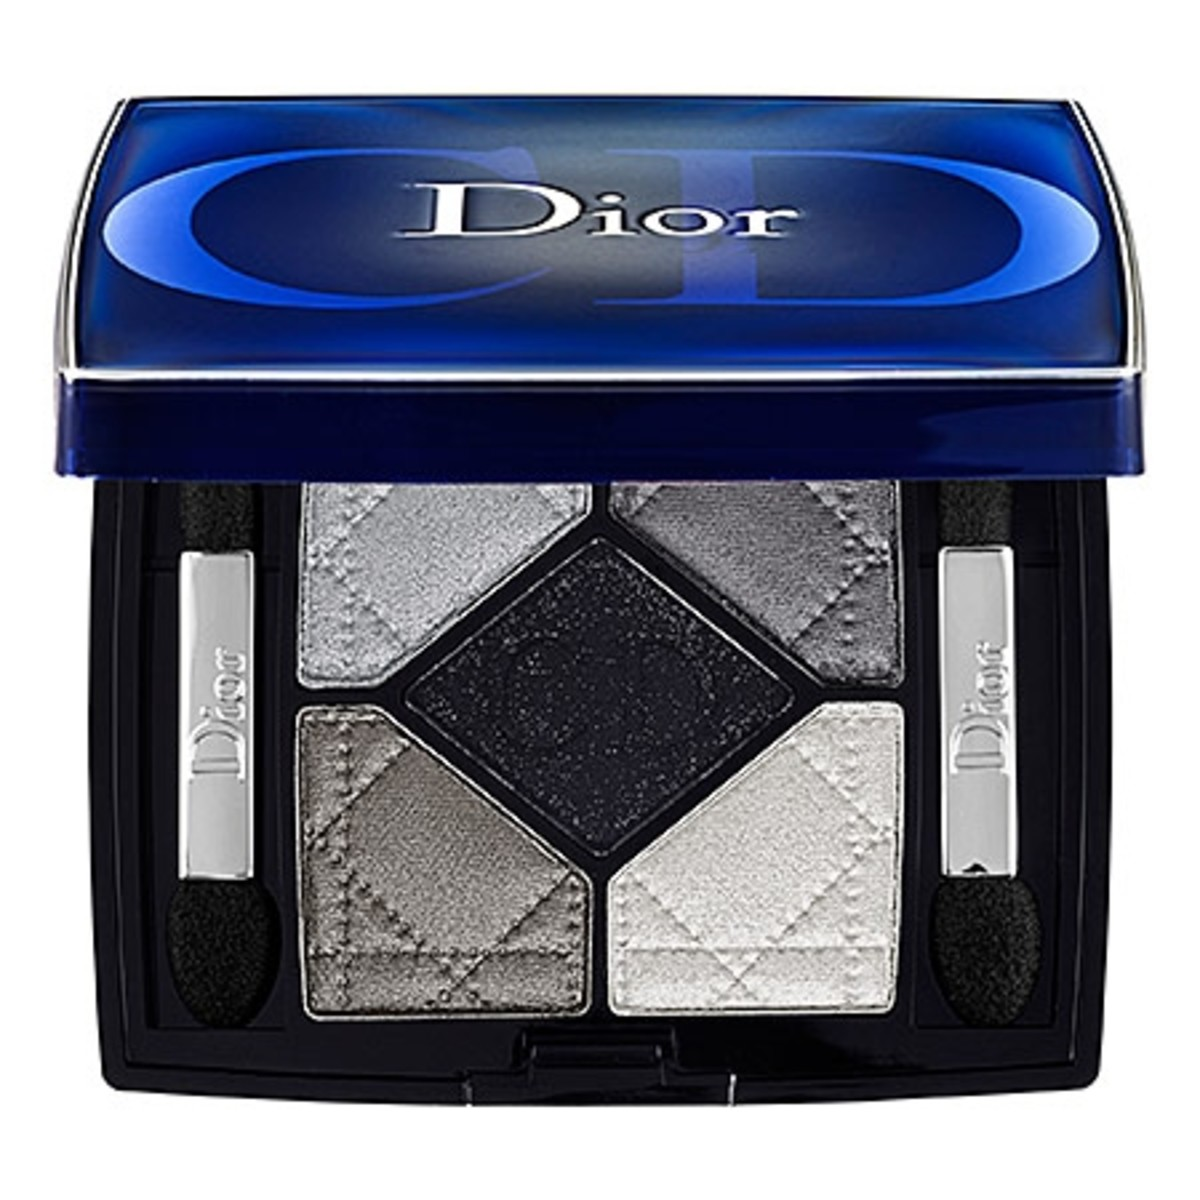 Dior 5-Colour Eyeshadow Palette in Gris Gris